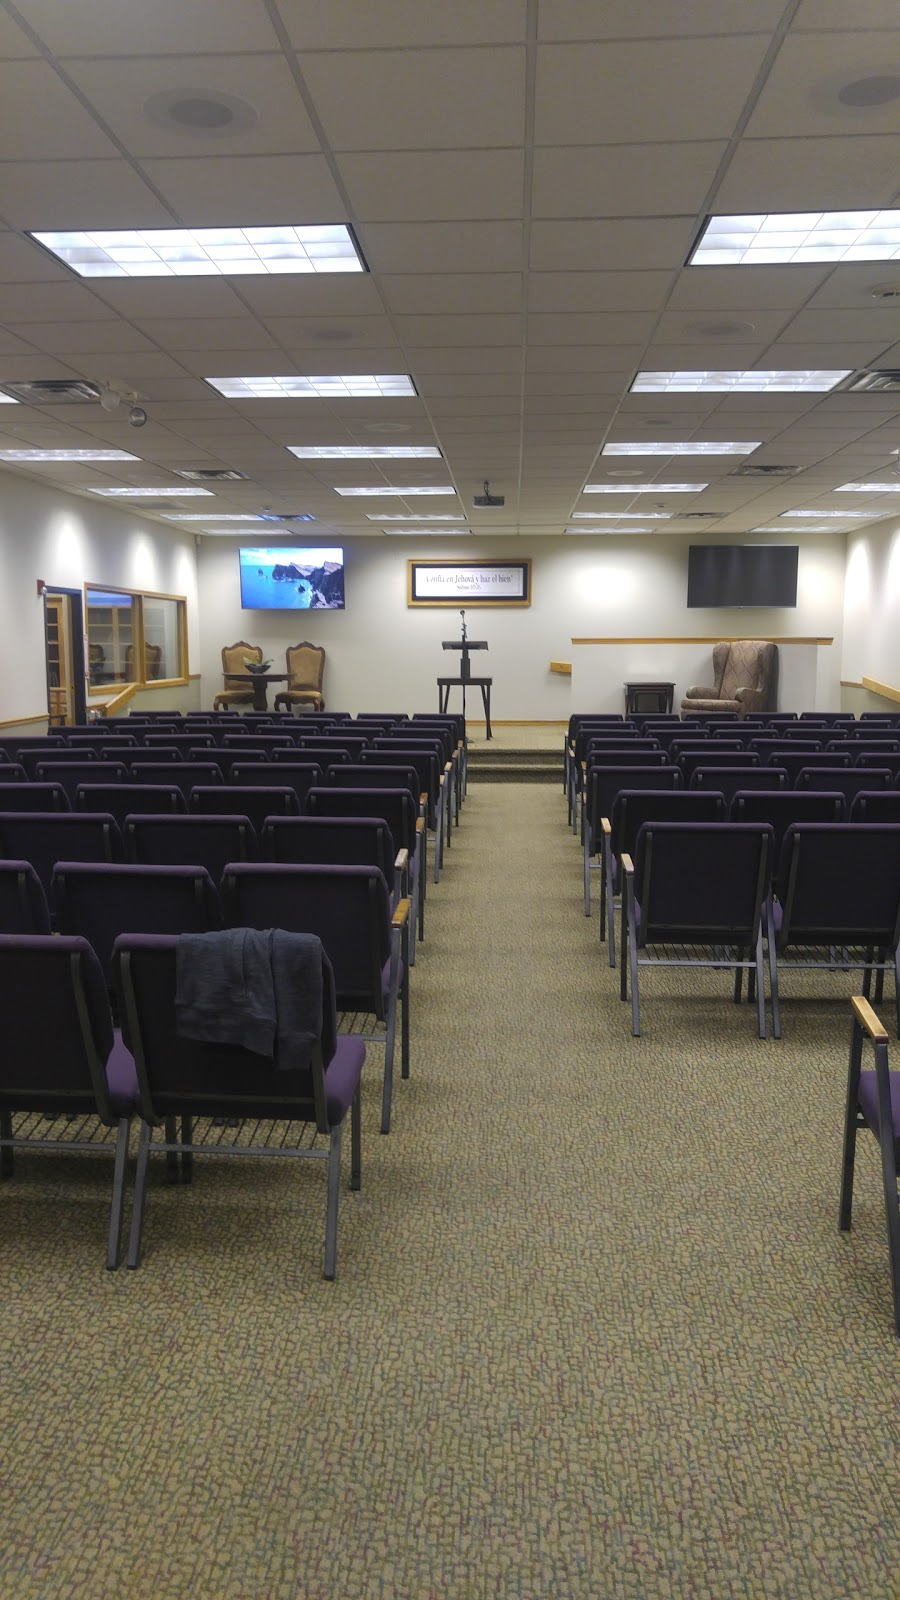 Kingdom Hall of Jehovahs Witnesses - church  | Photo 2 of 5 | Address: 4225 Roosevelt Rd, Chicago, IL 60624, USA | Phone: (773) 277-3572